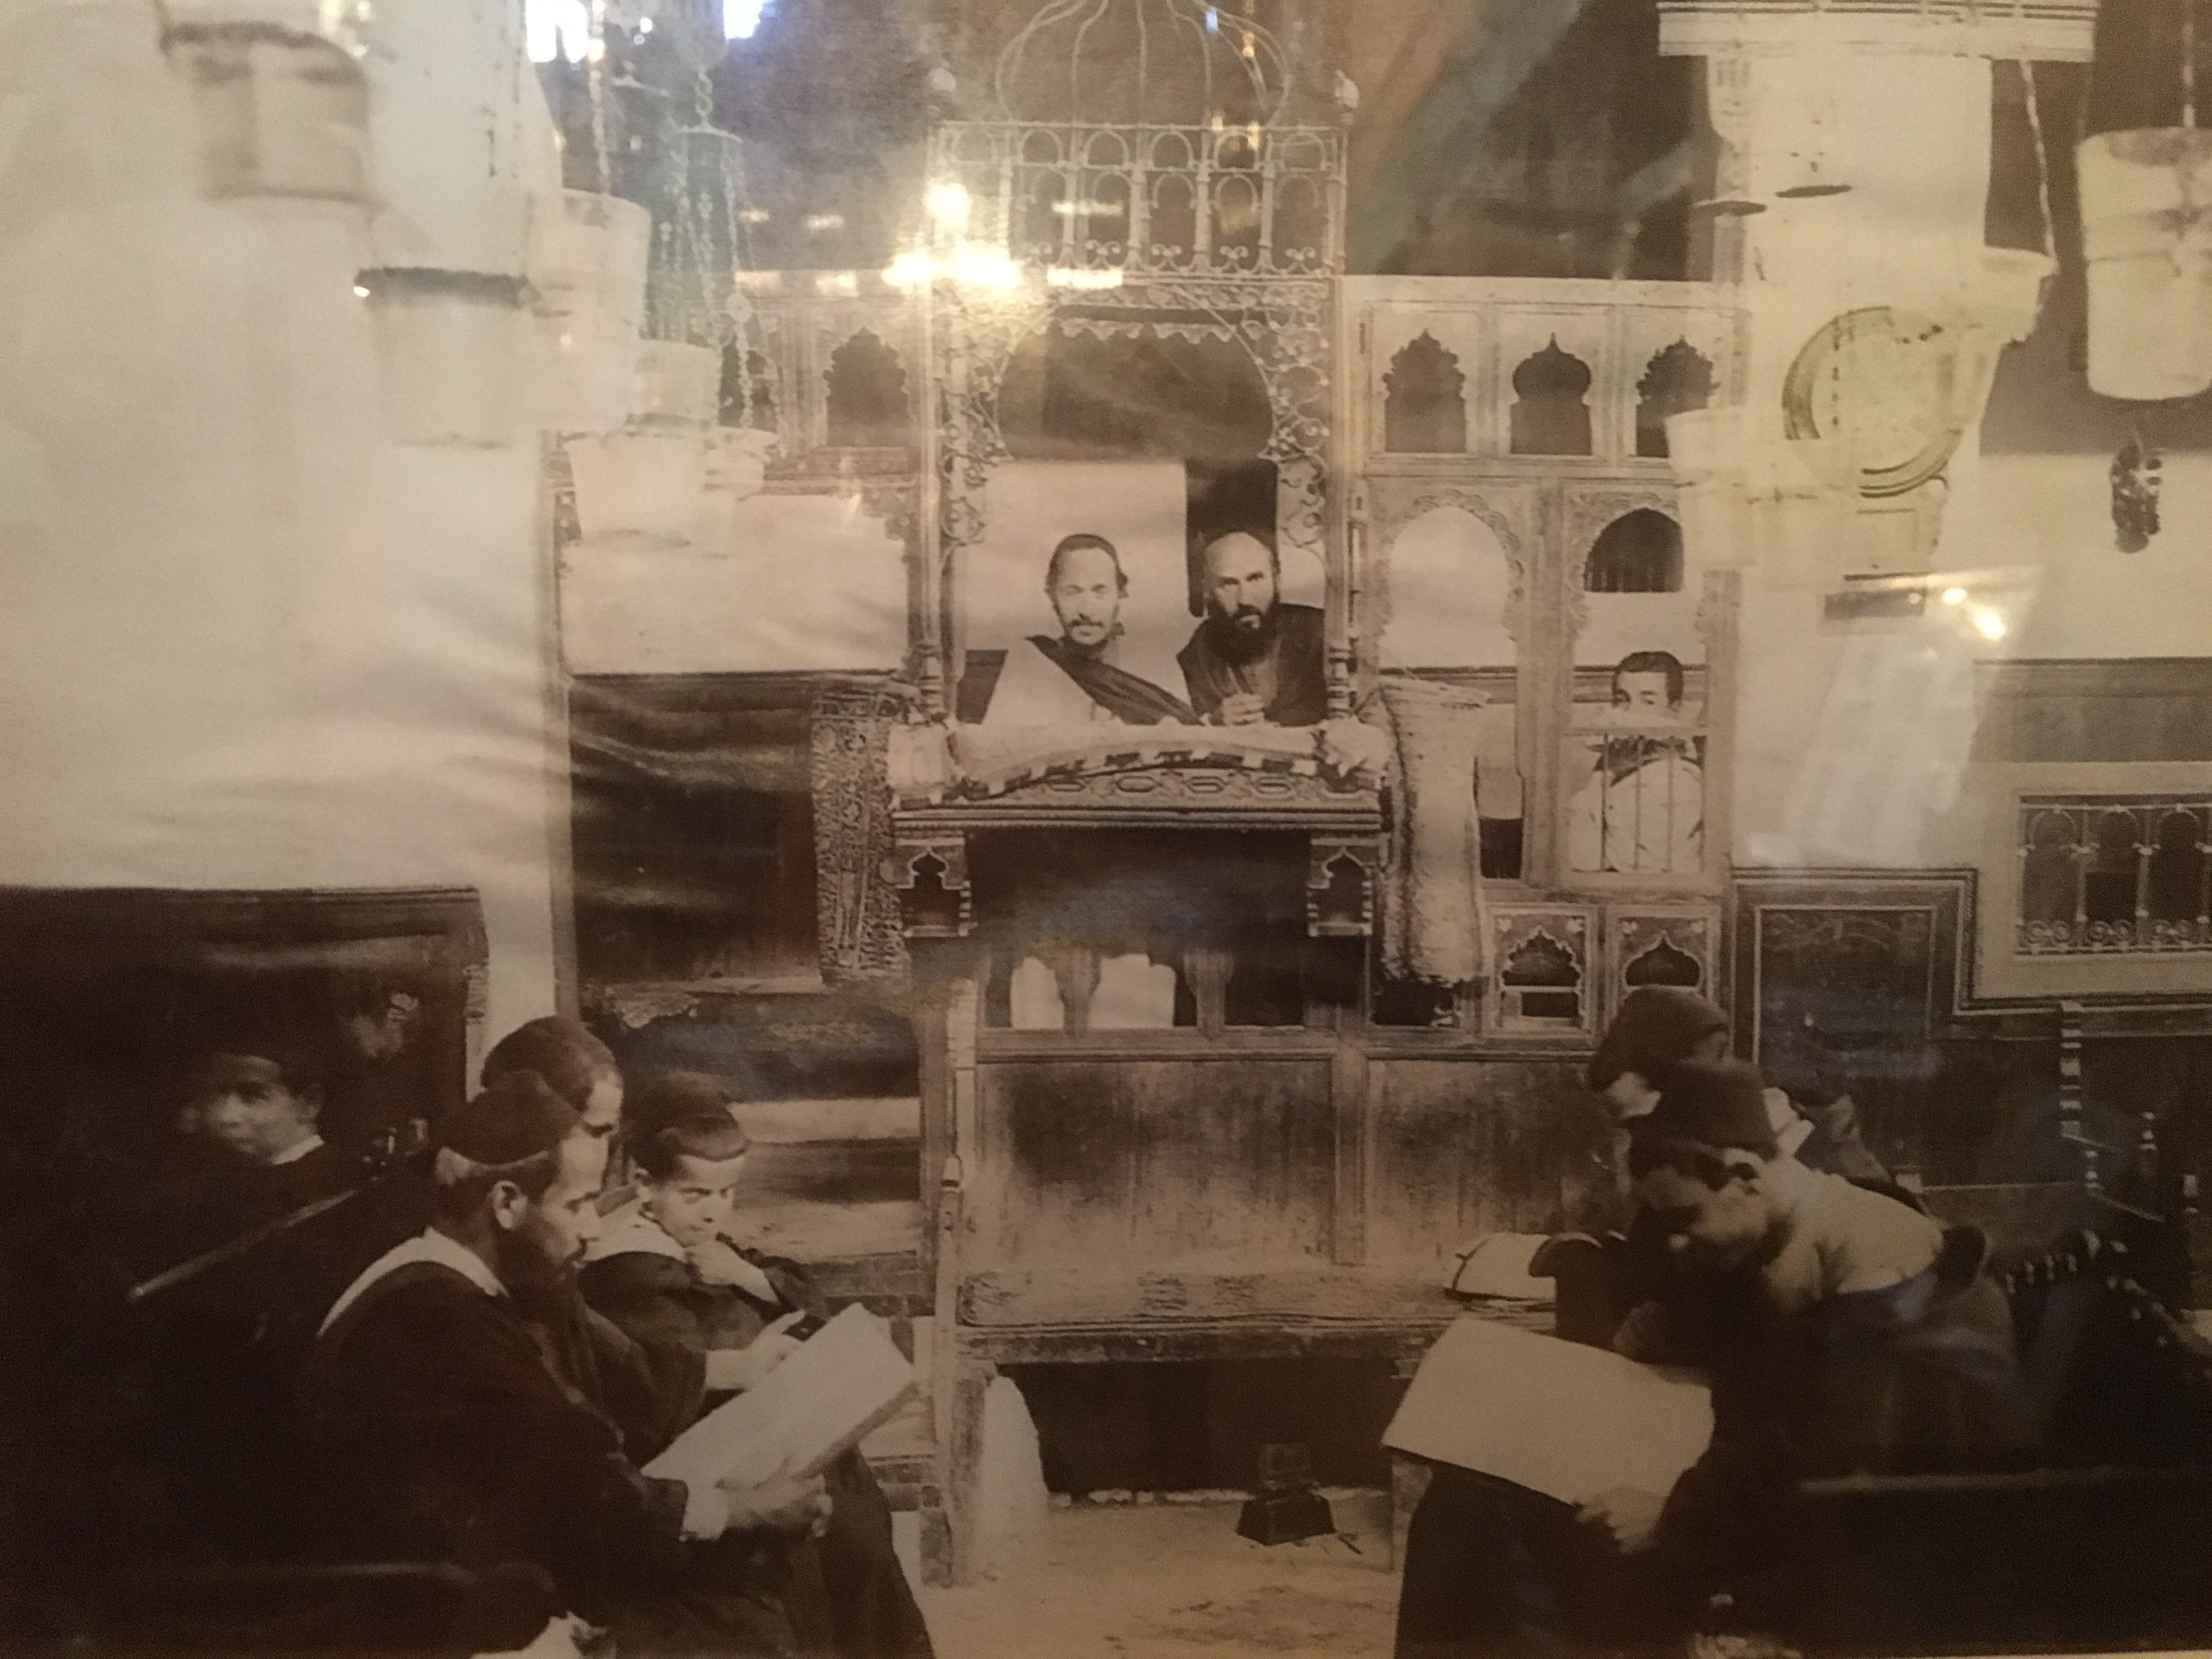 Old photo of the Ibn Danan synagogue and congregants